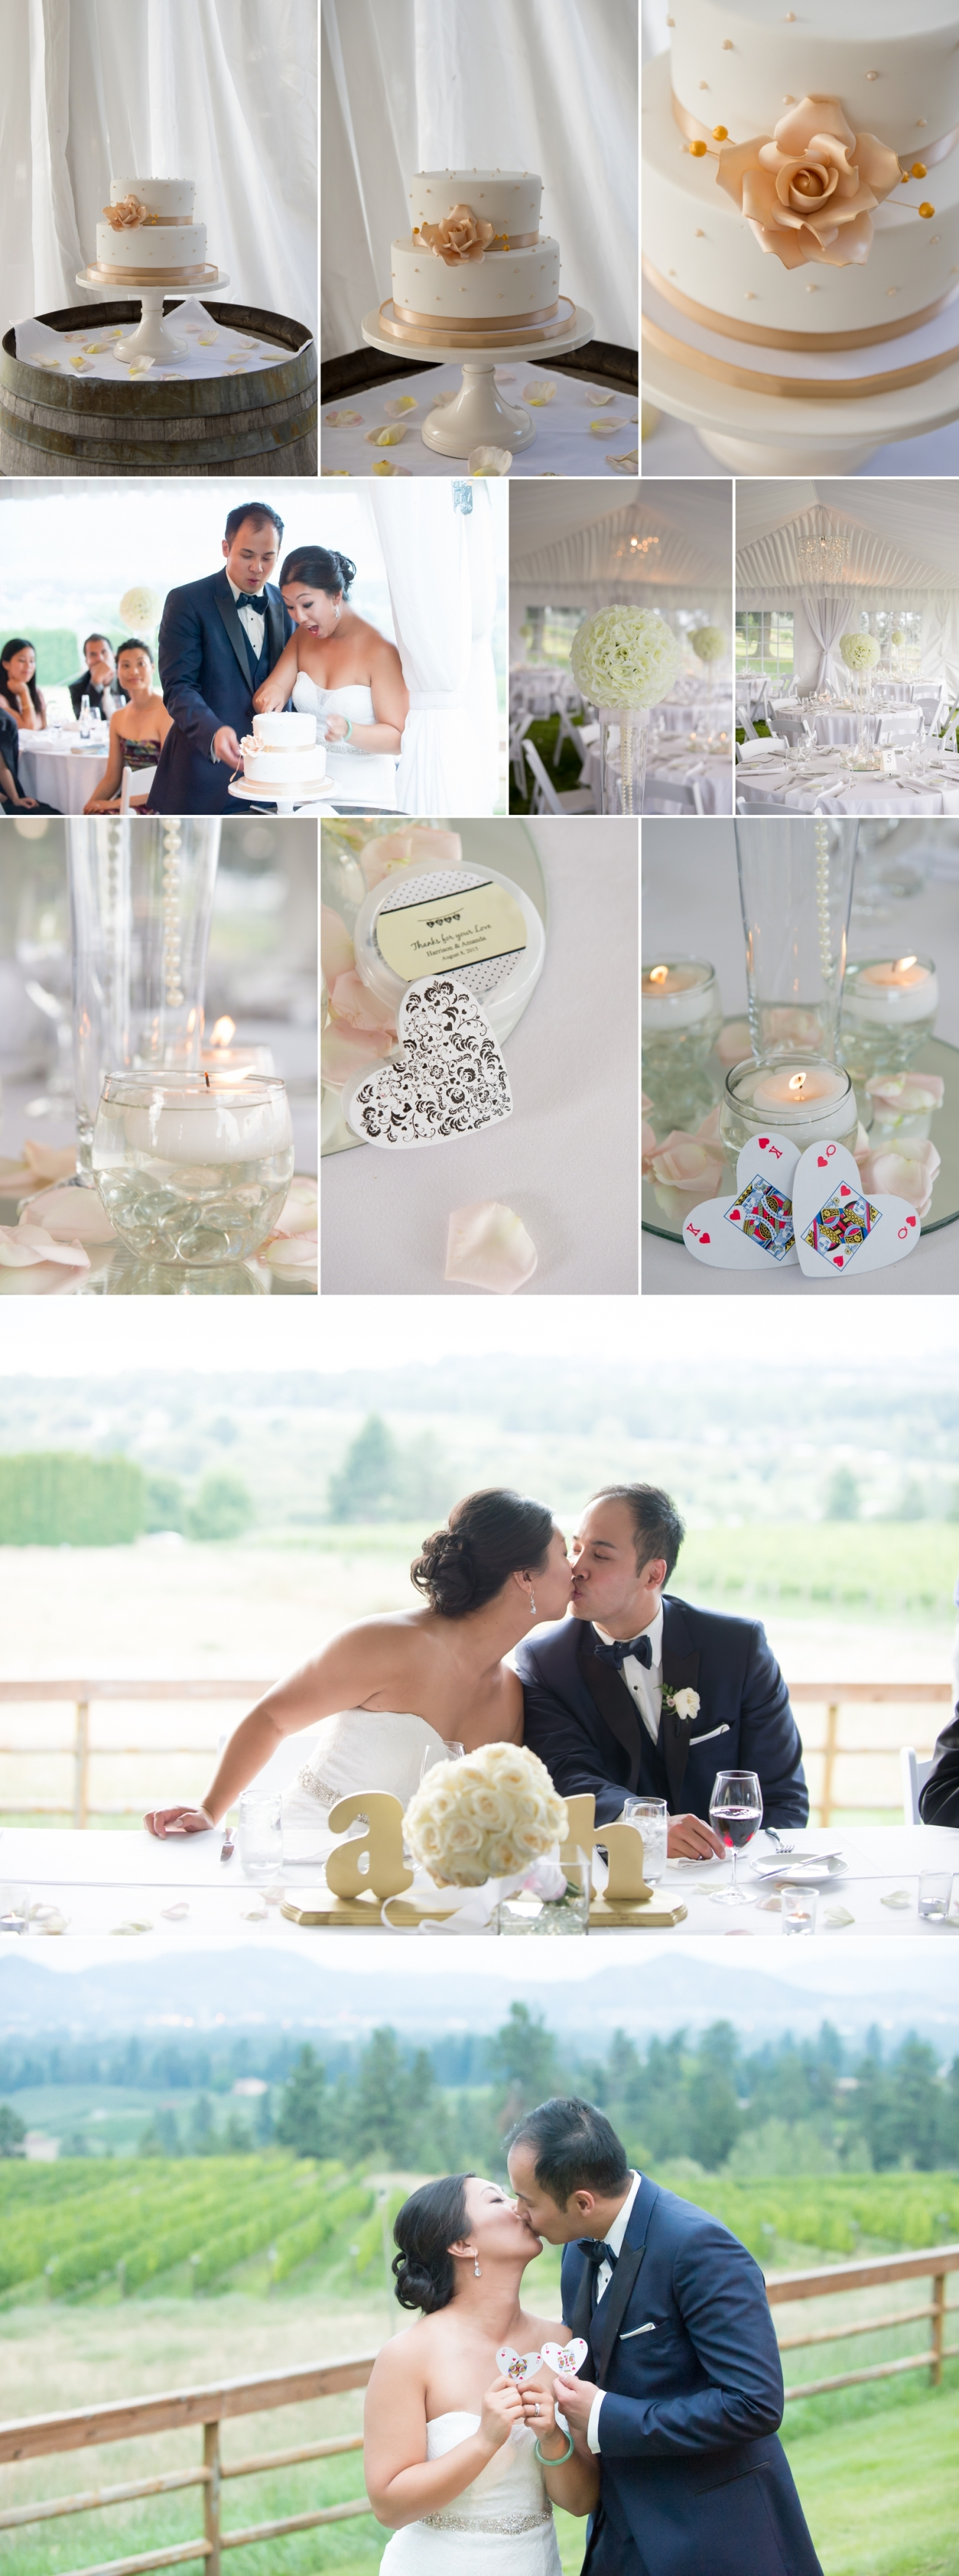 Tantalus Winery Wedding - Kelowna Okanagan - Suzanne le Stage 19